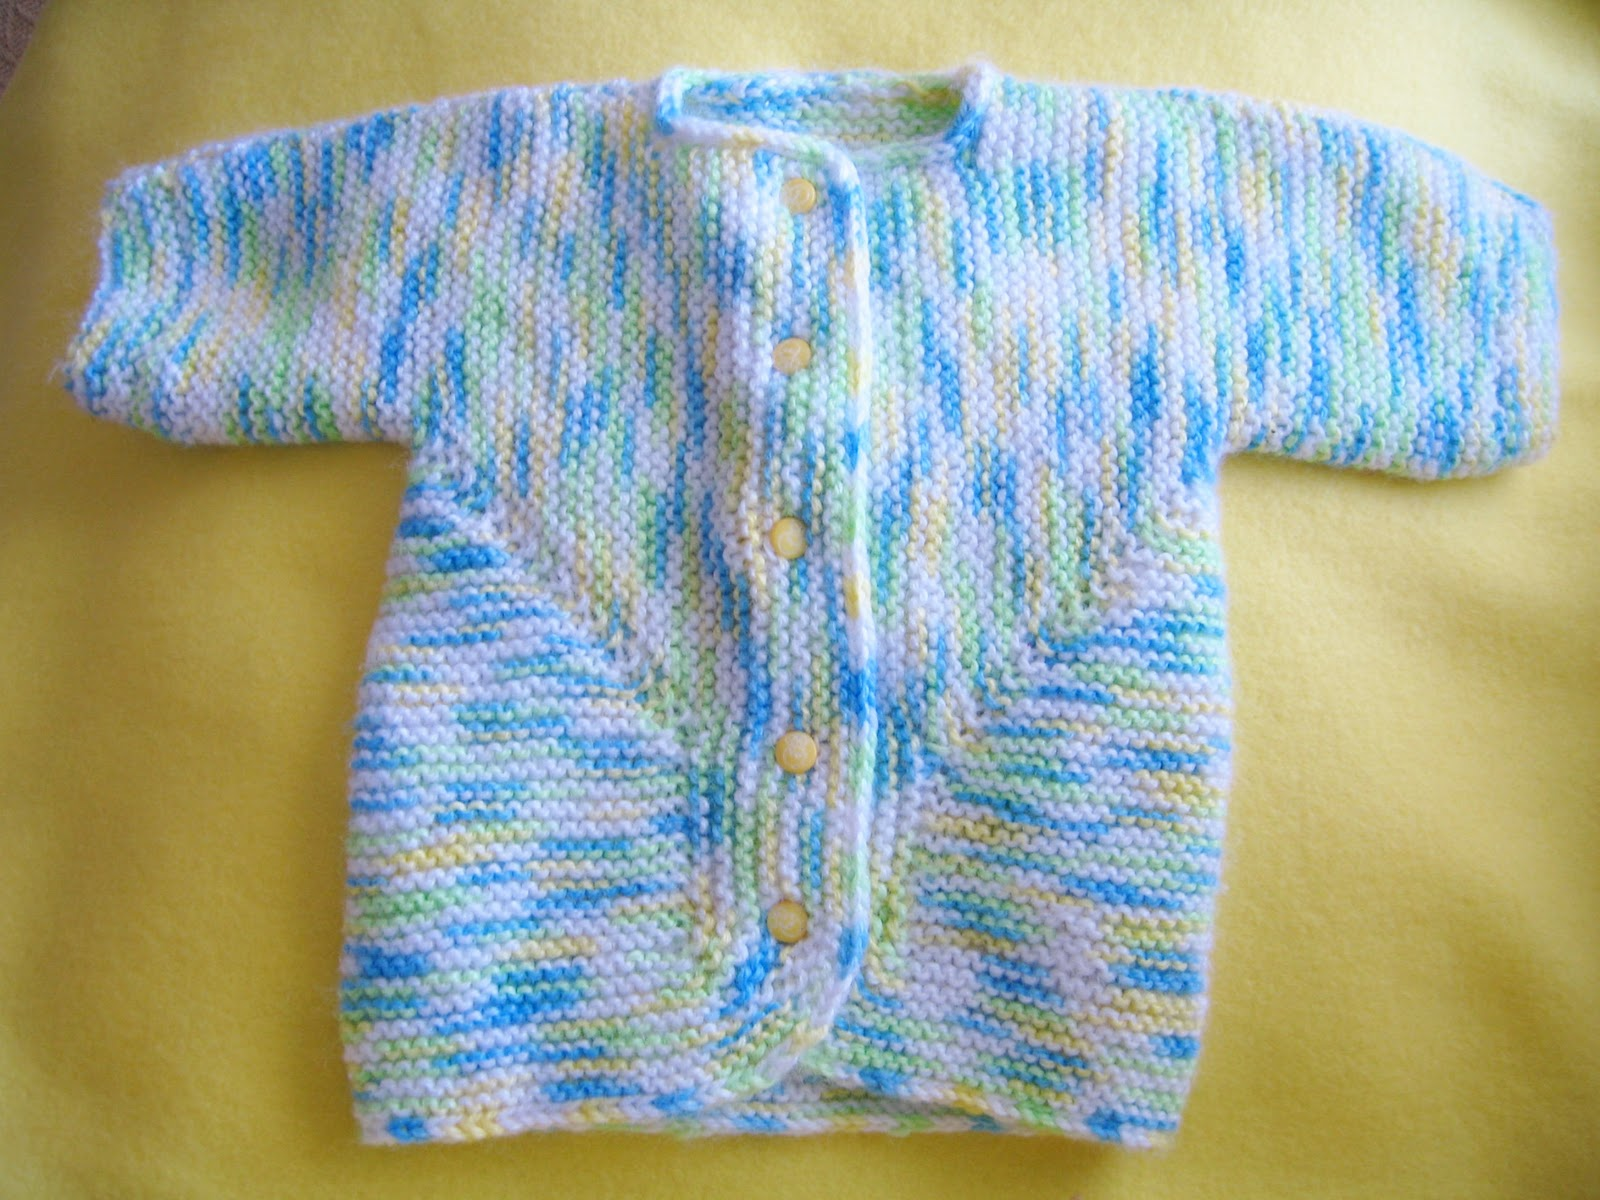 Crochet Surprise Jacket Free Pattern : Knitting By The Ocean: Baby Surprise Jacket